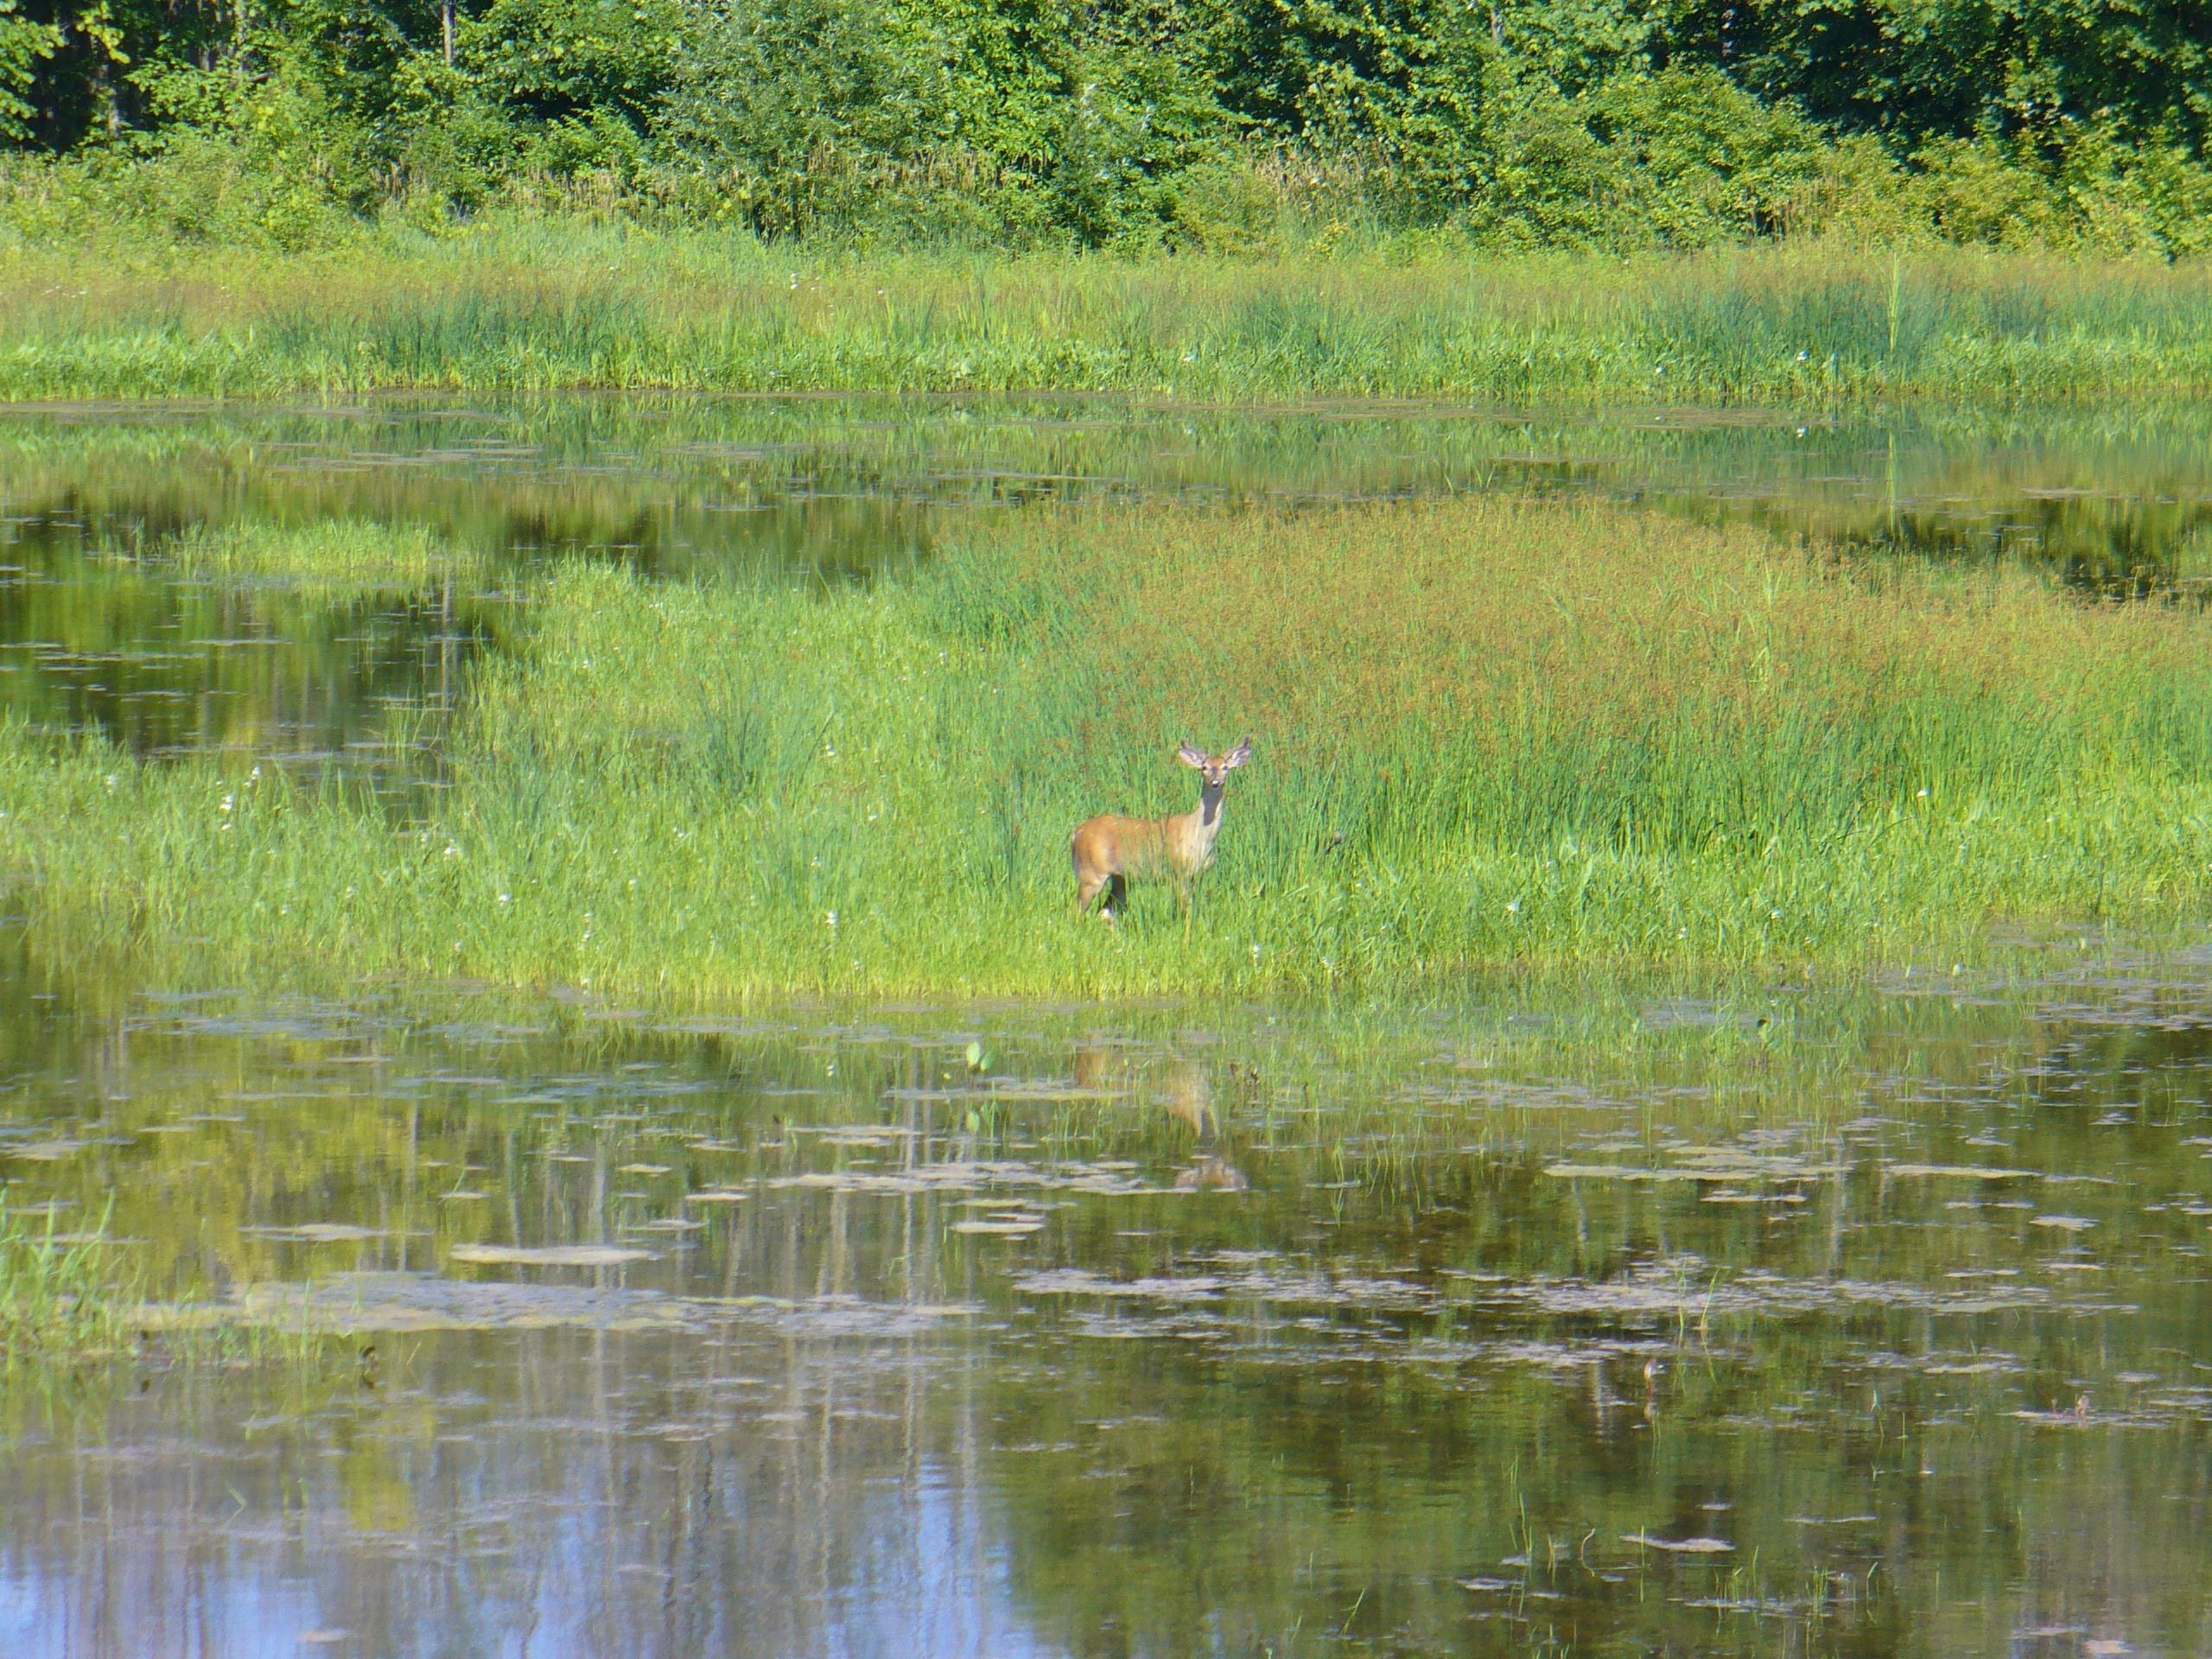 A deer stands in a wetland area